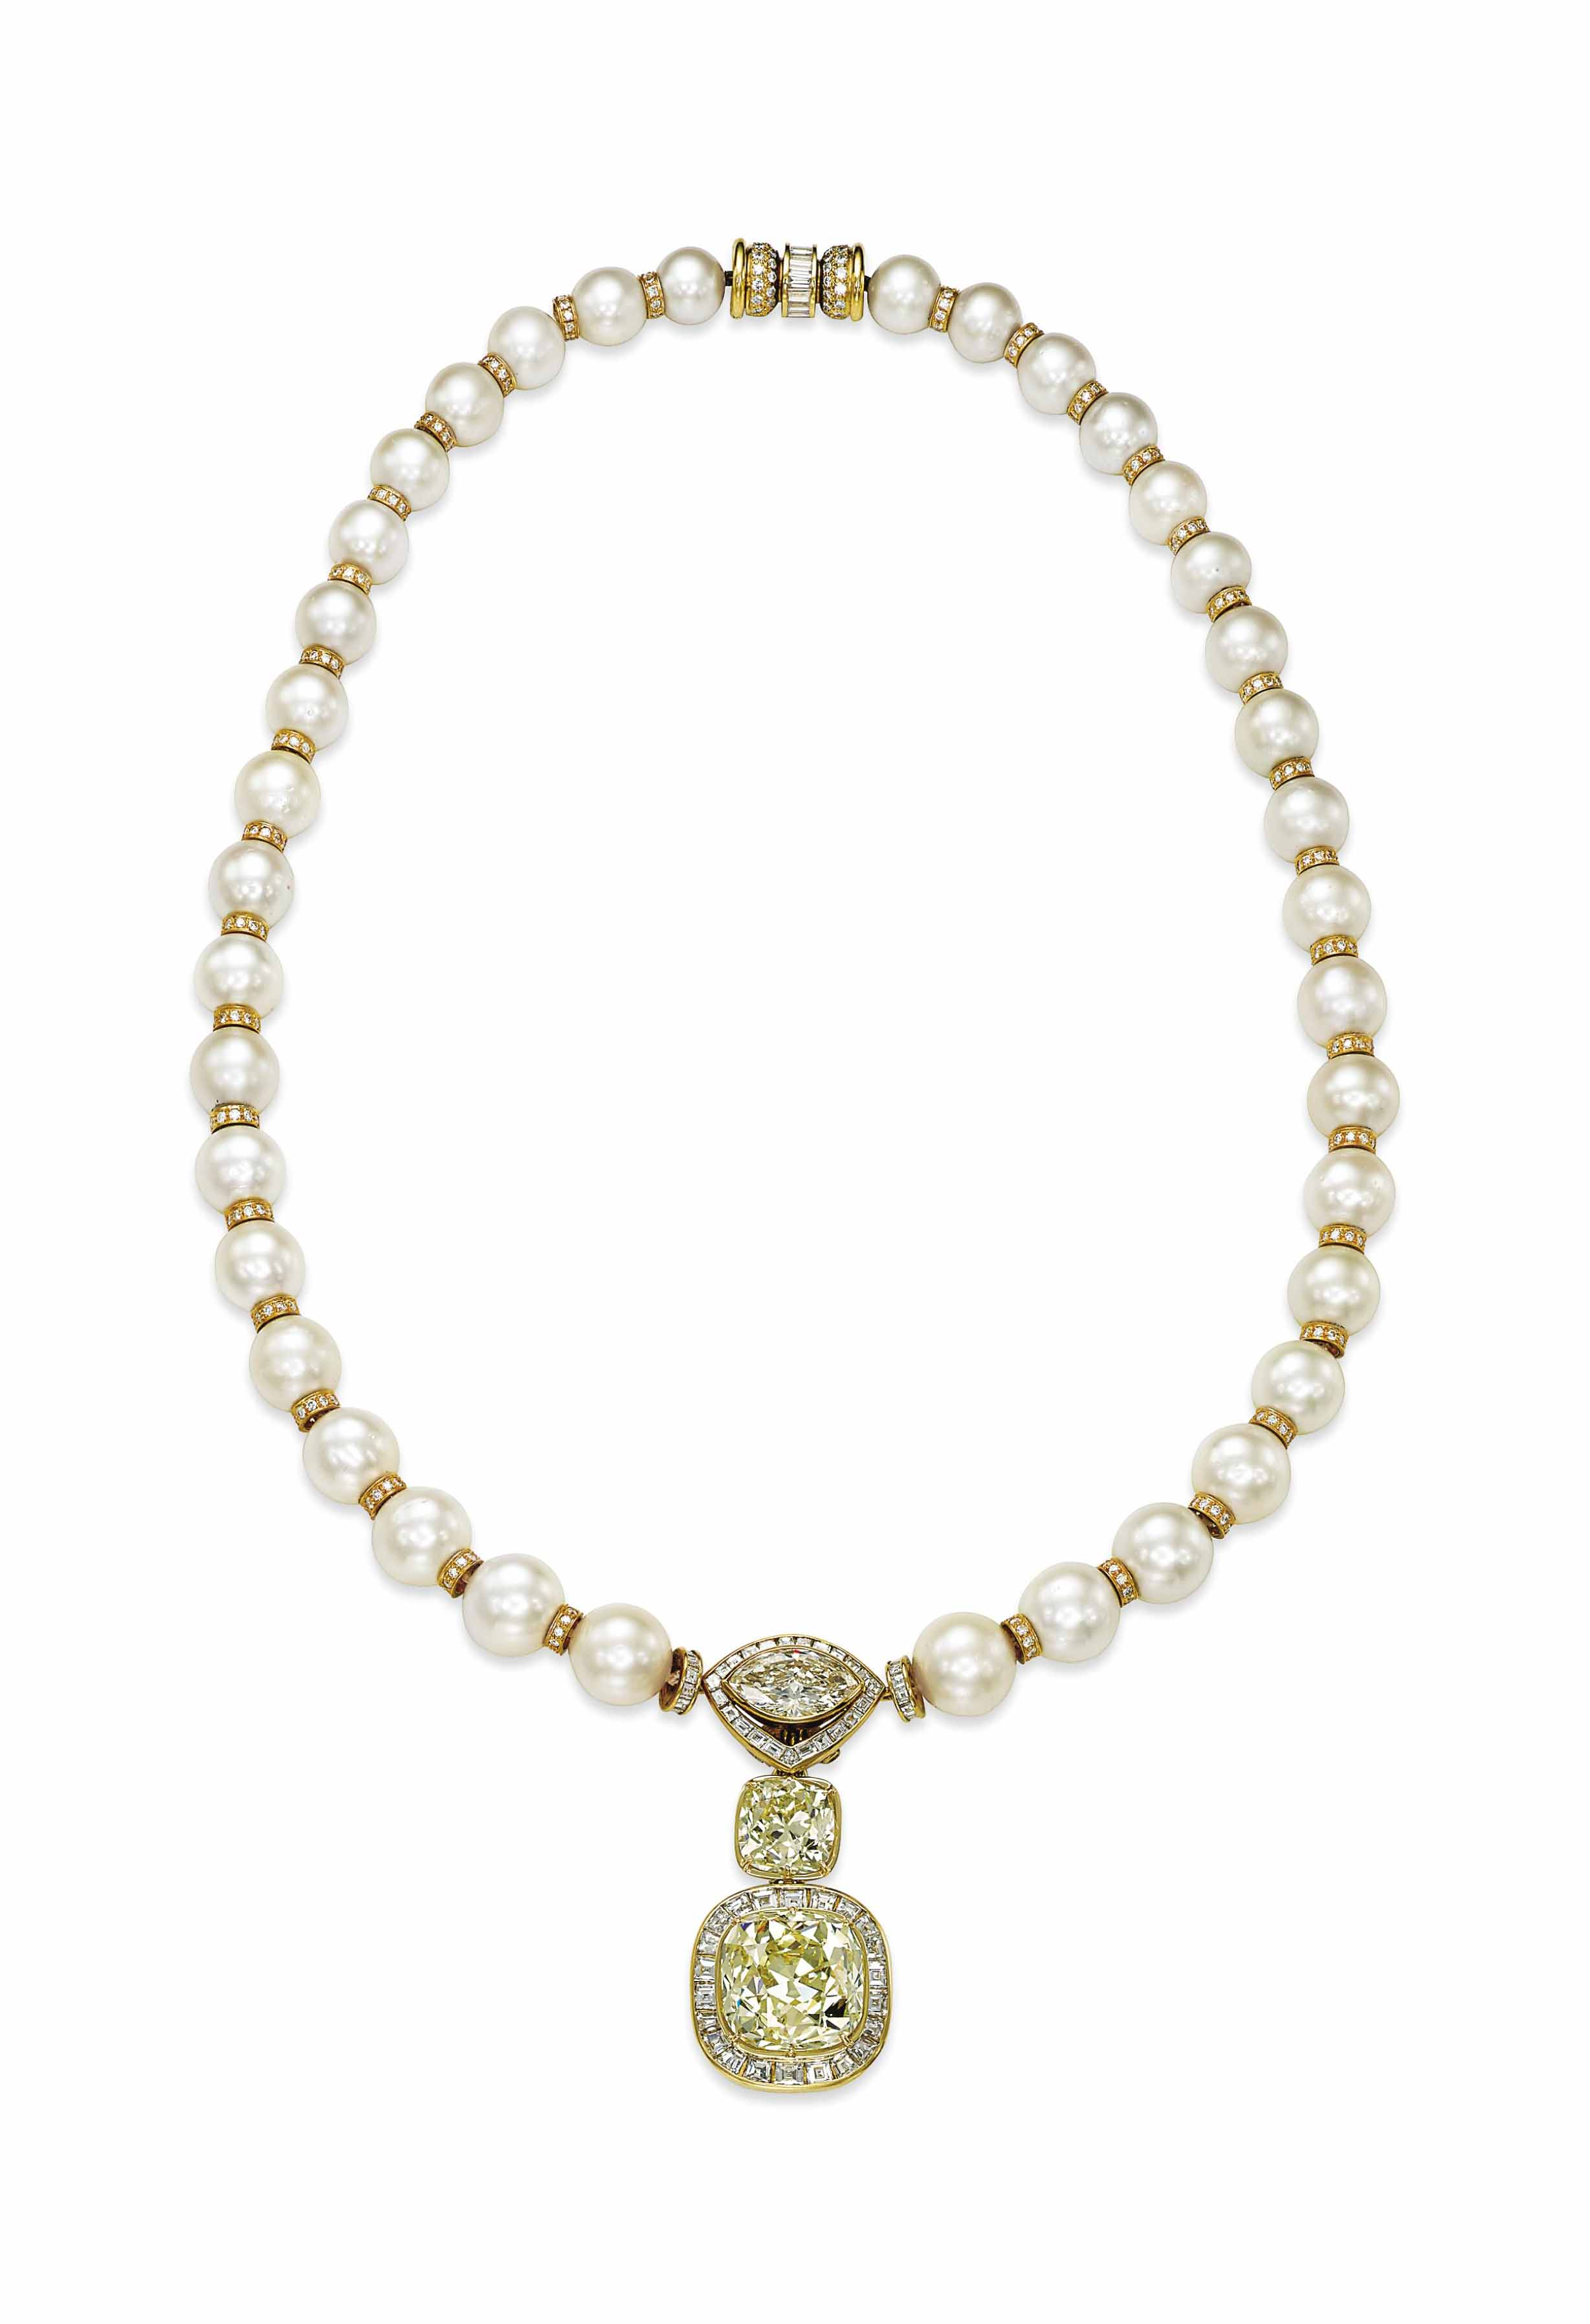 A COLOURED DIAMOND, DIAMOND AND CULTURED PEARL NECKLACE, BY ADLER